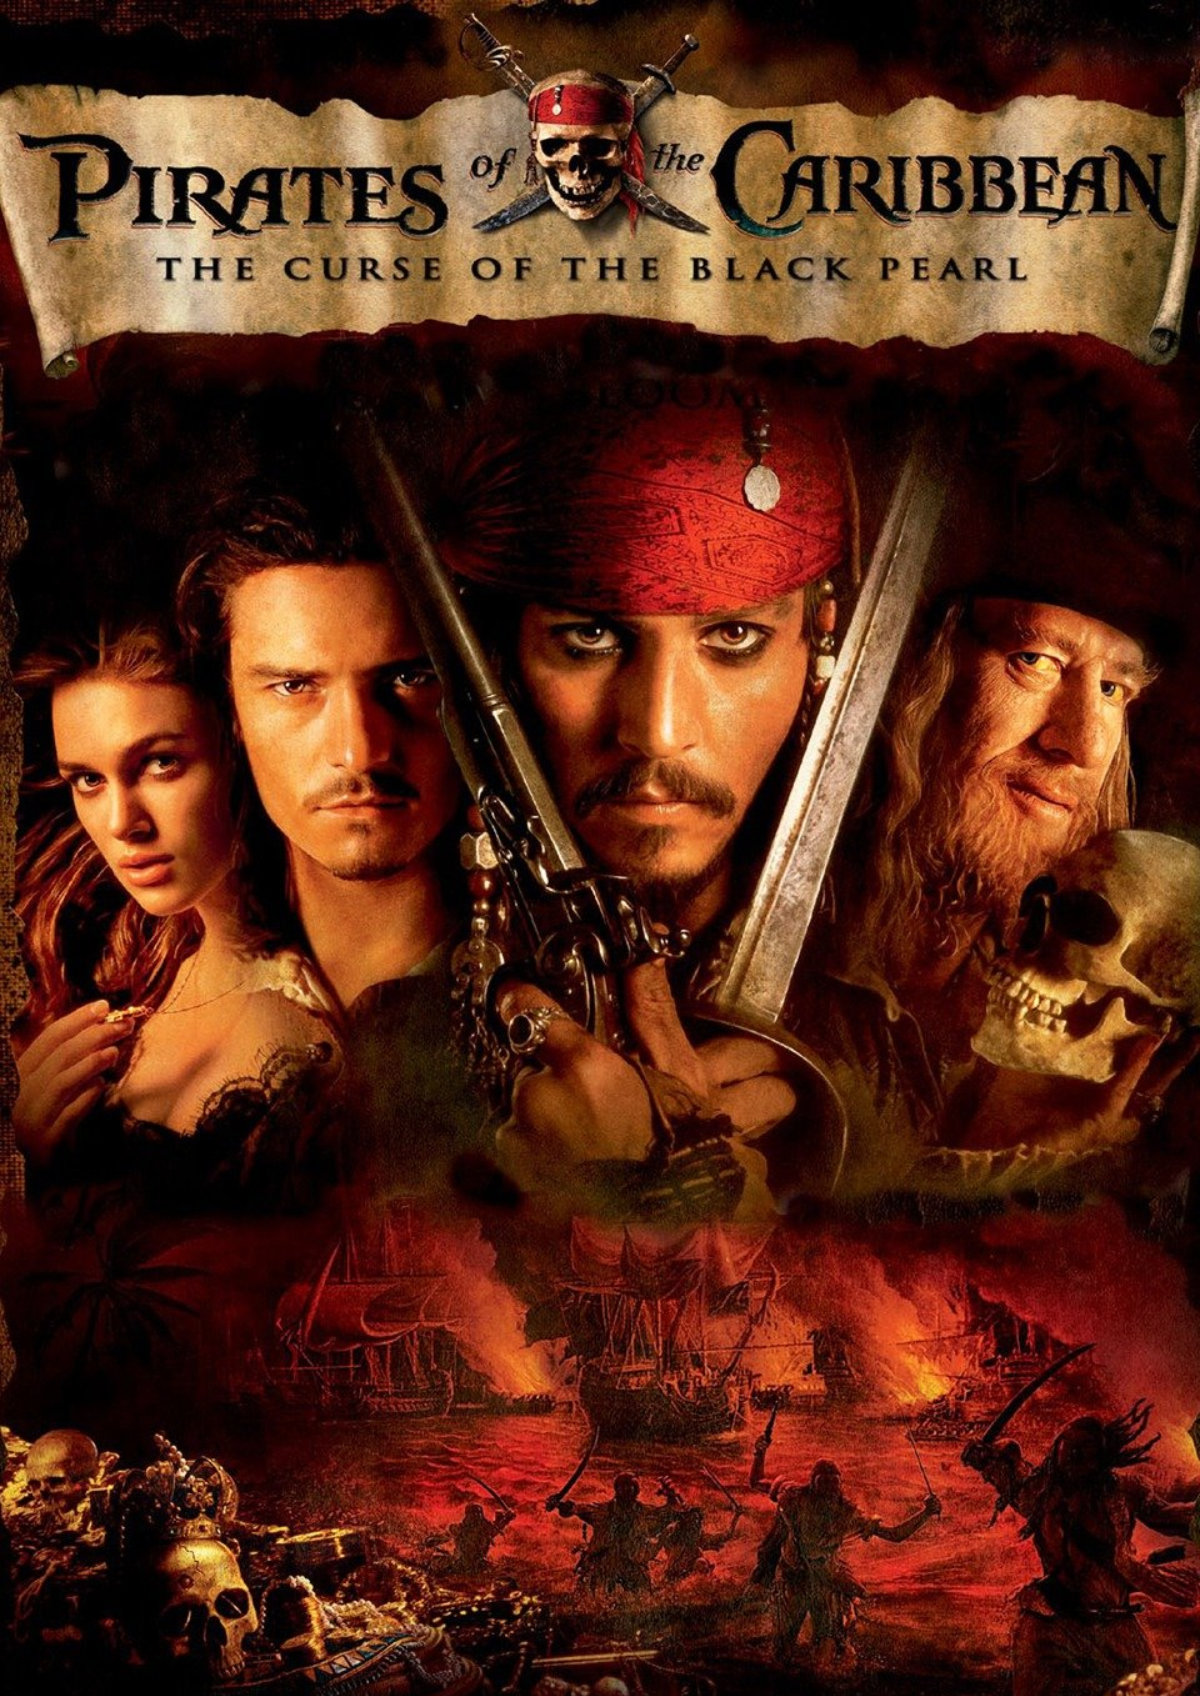 'Pirates Of The Caribbean: The Curse Of The Black Pearl' movie poster